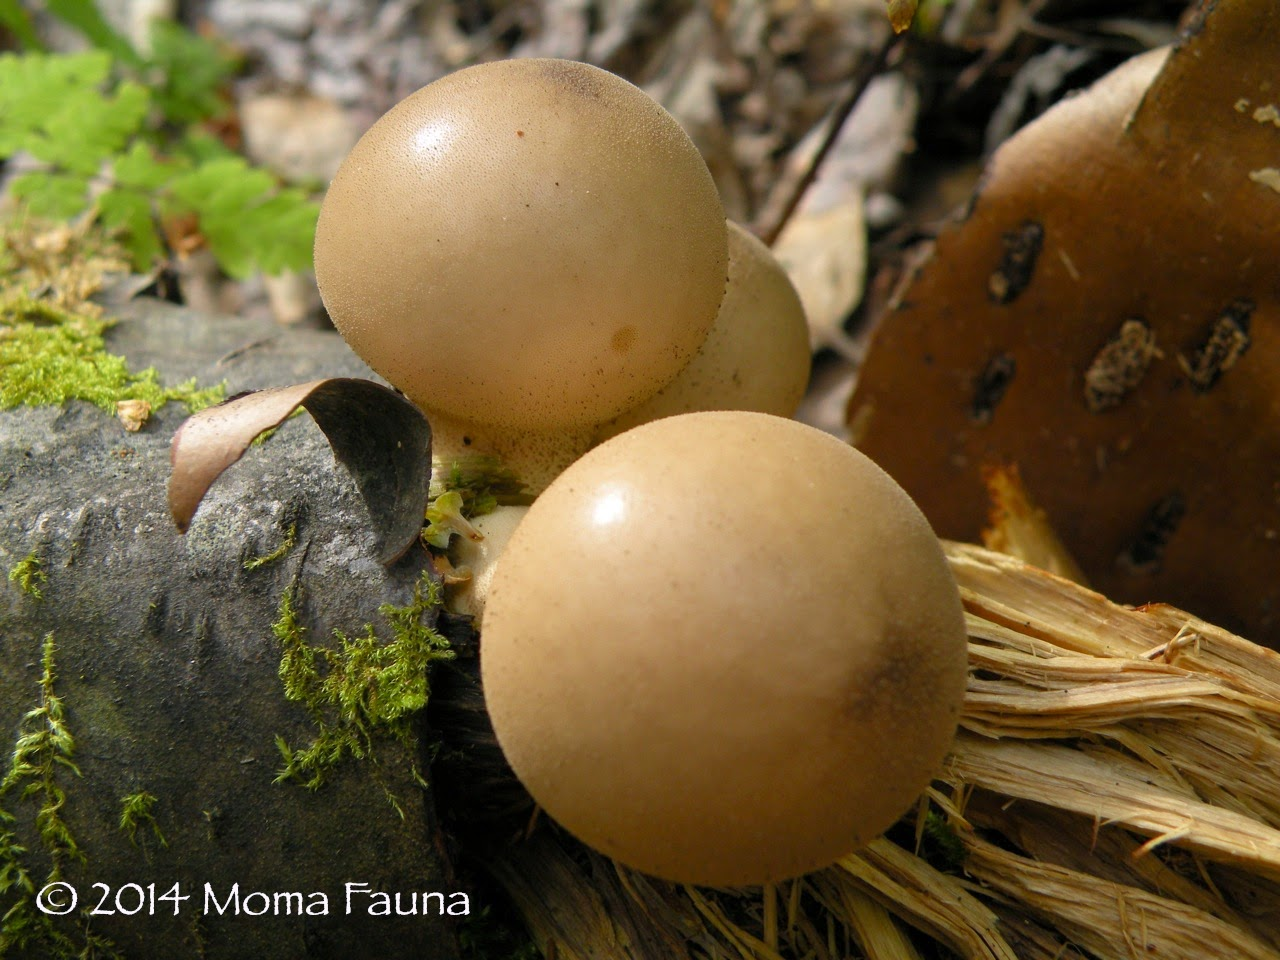 Pear-shaped Puffballs. Lycoperdon pyriforme.